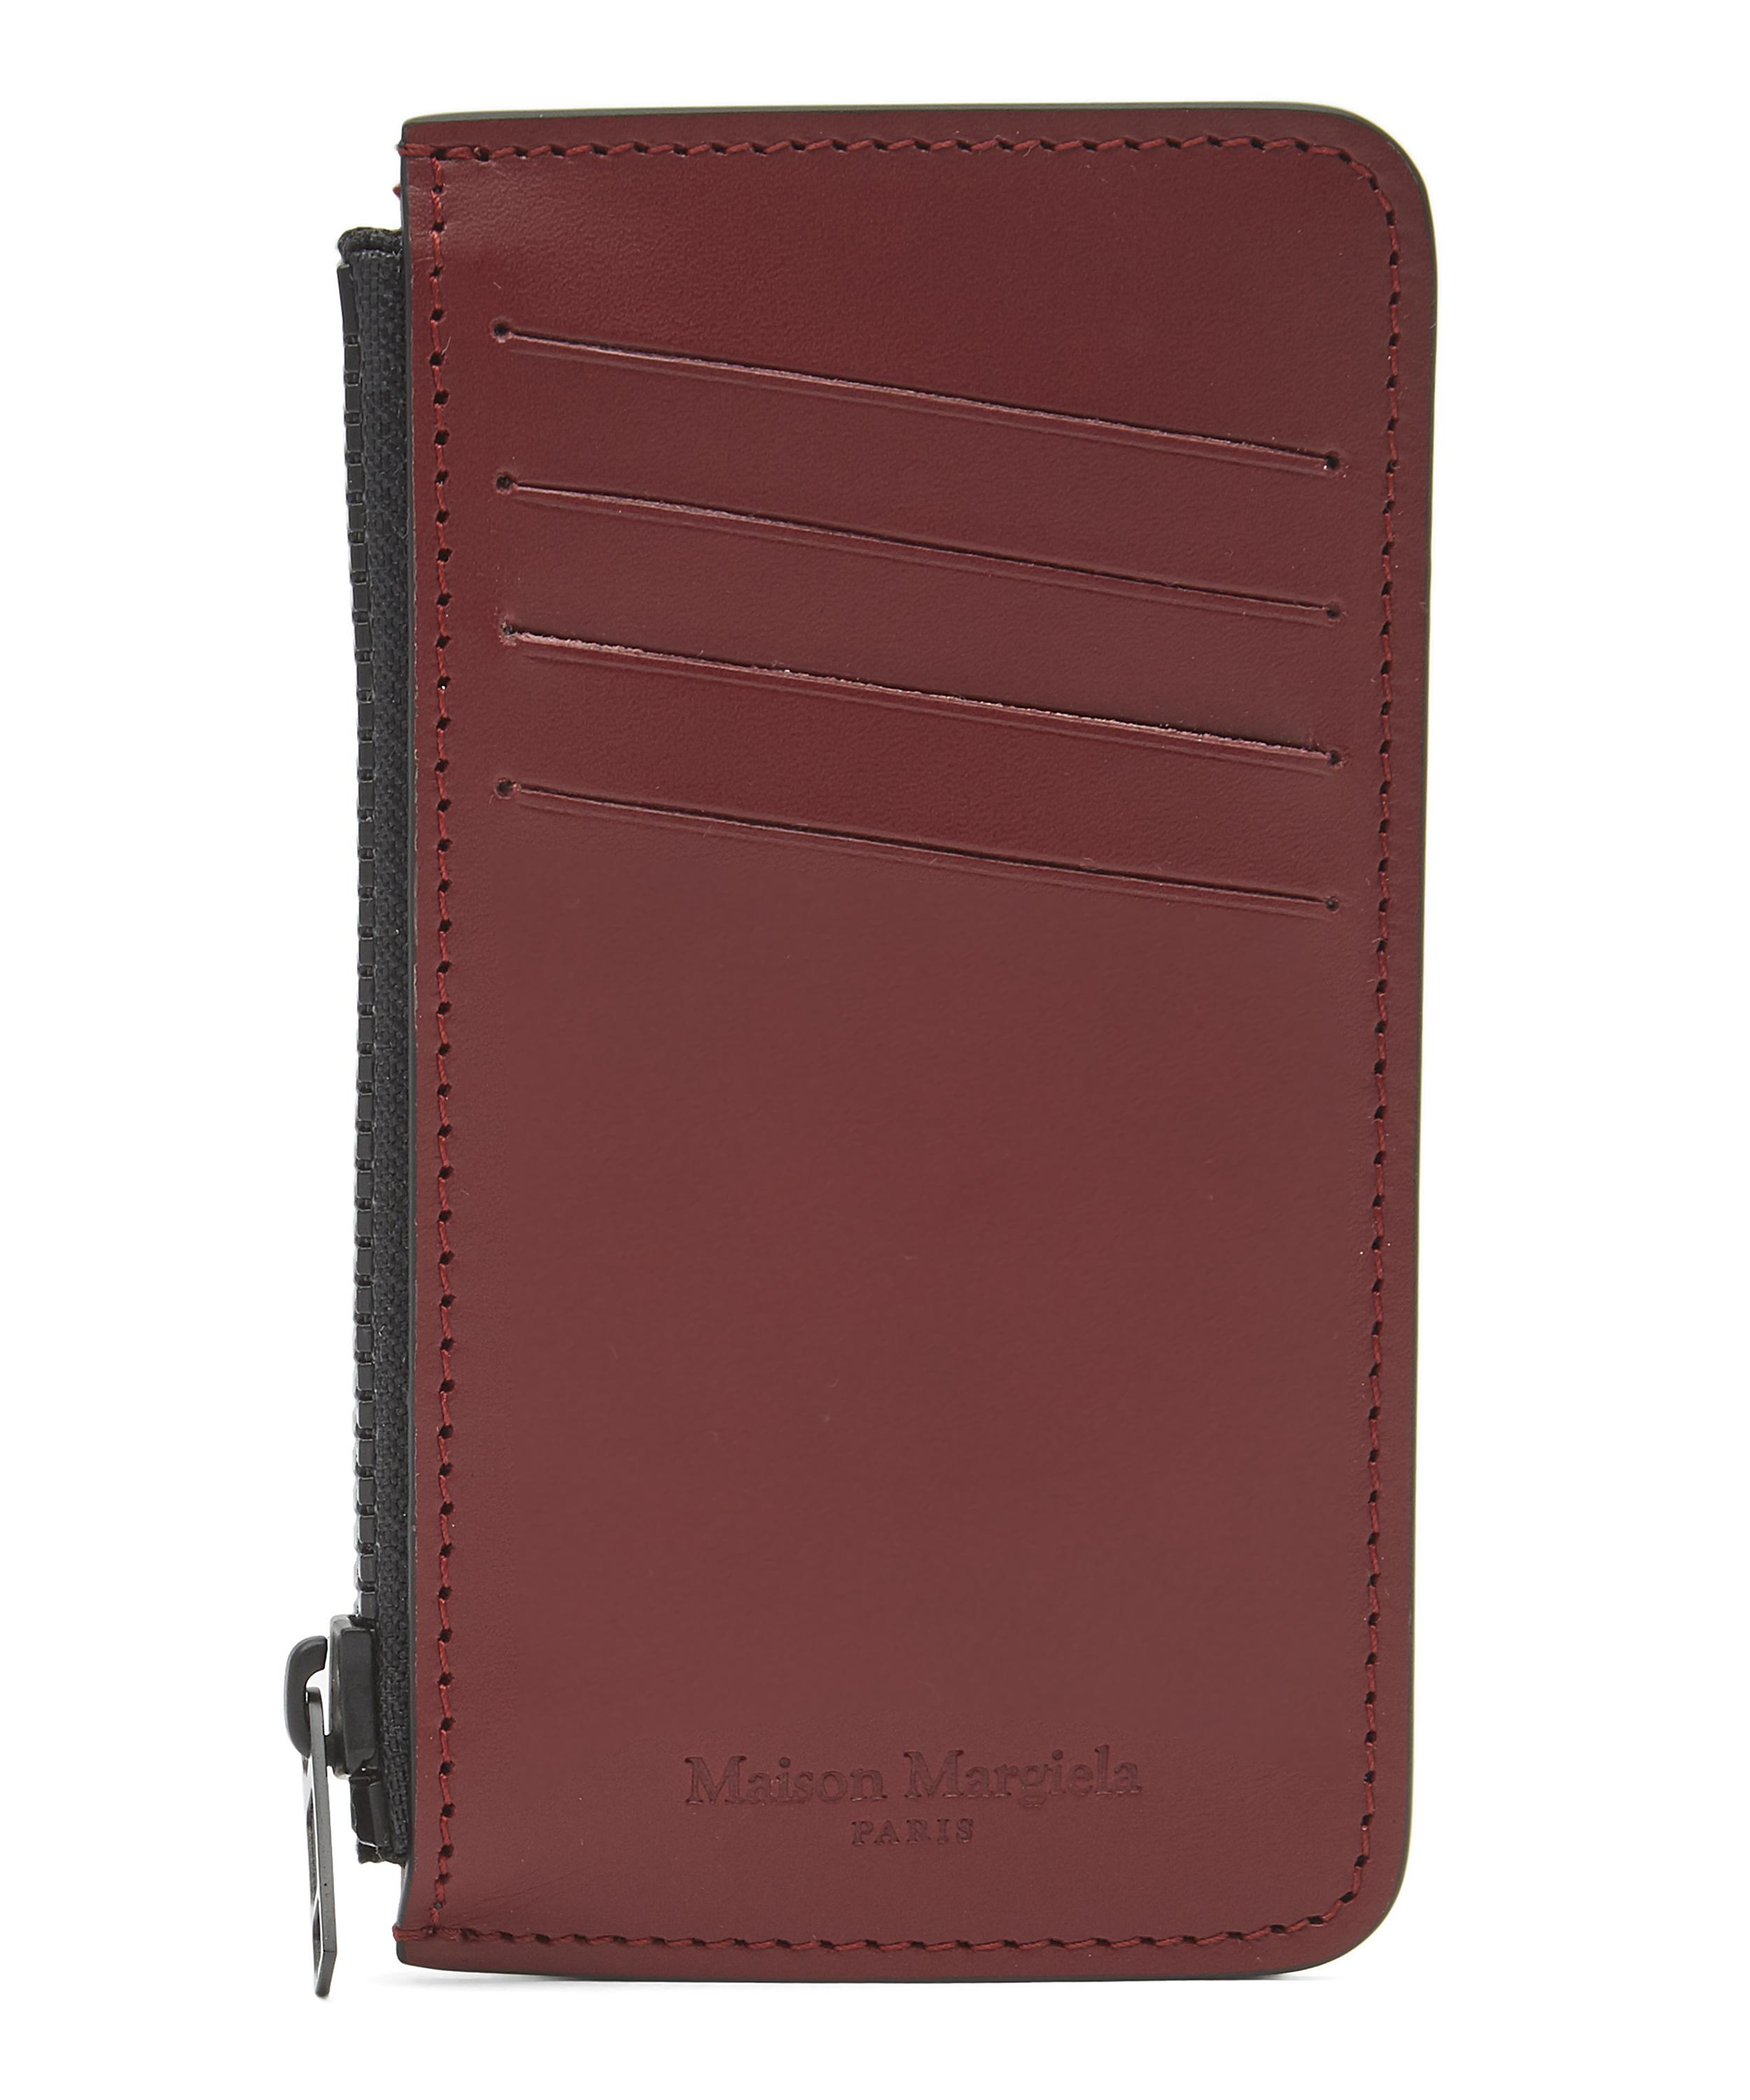 size 40 7cb43 3502c Leather Zip Card Case